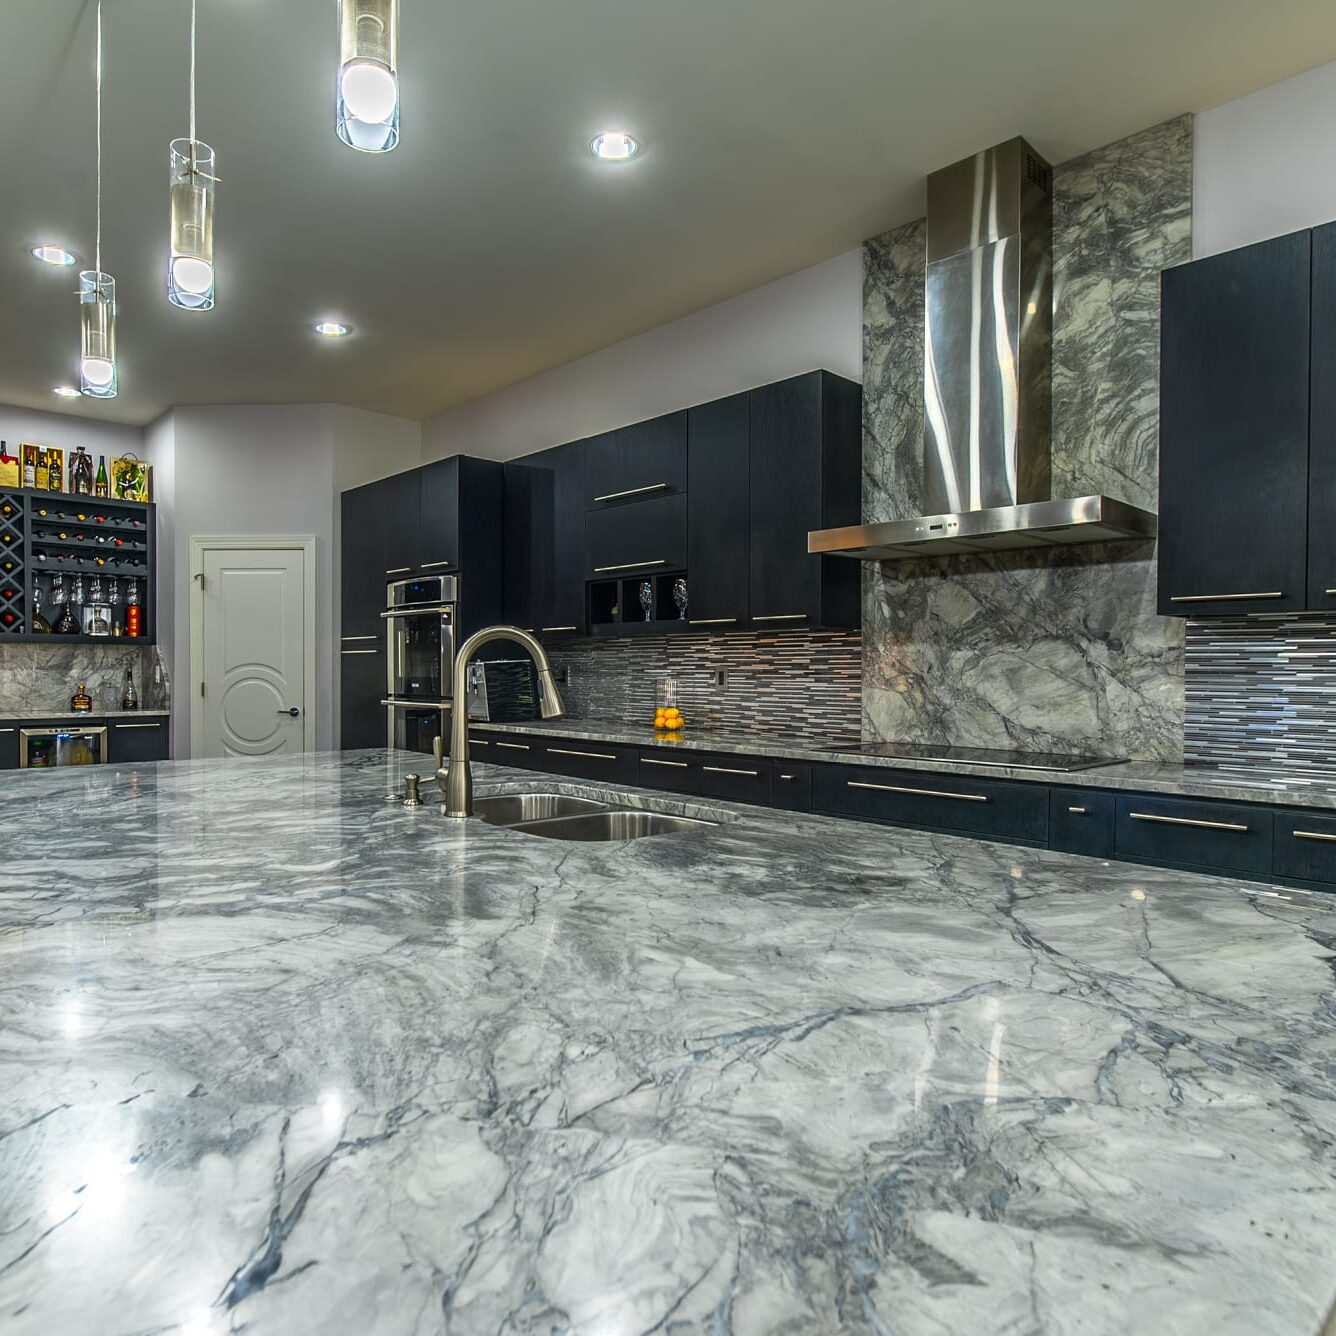 Granite Countertops Heat Damage Marble Countertops In Columbia Sc Your Dream Space Awaits You